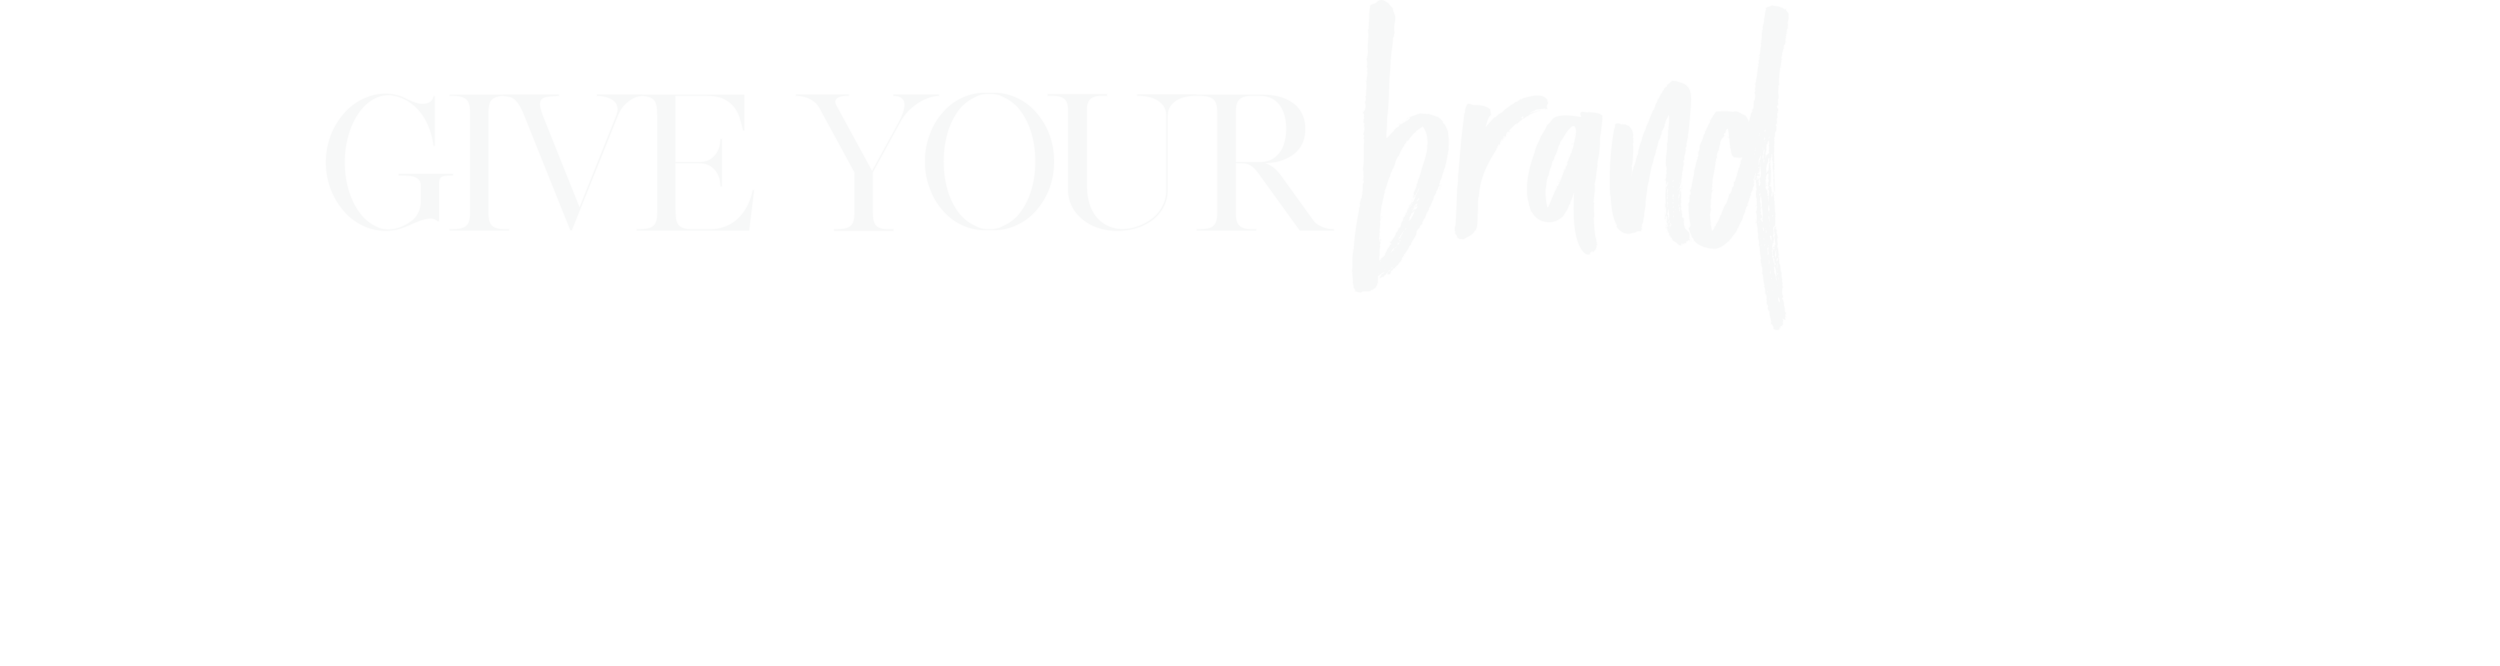 give your brandan  unforgettable experience.png